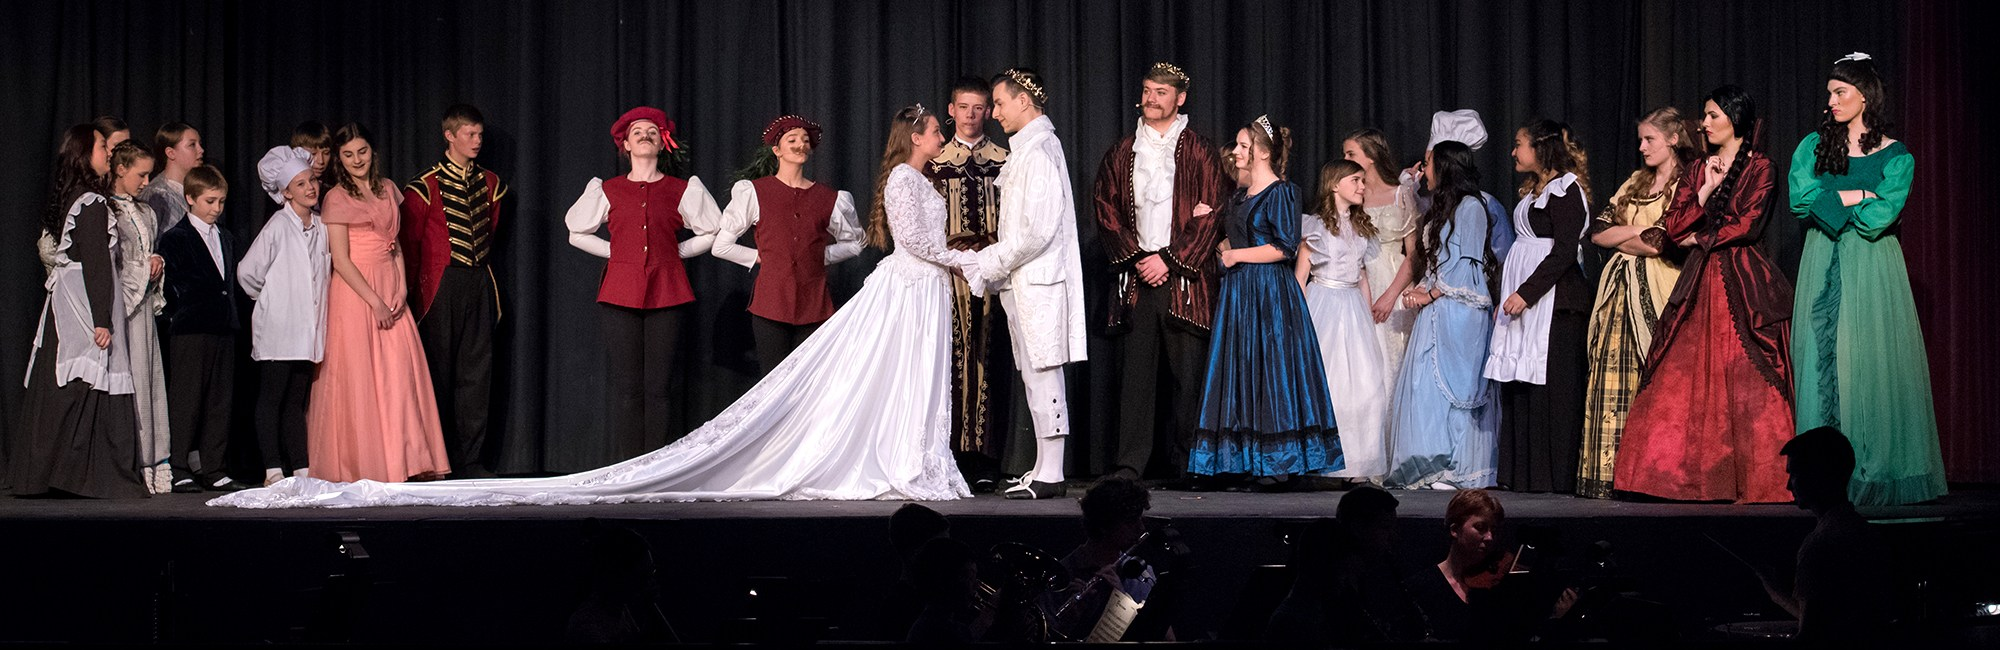 Cinderella Musical - cast on stage and musicians in the pit